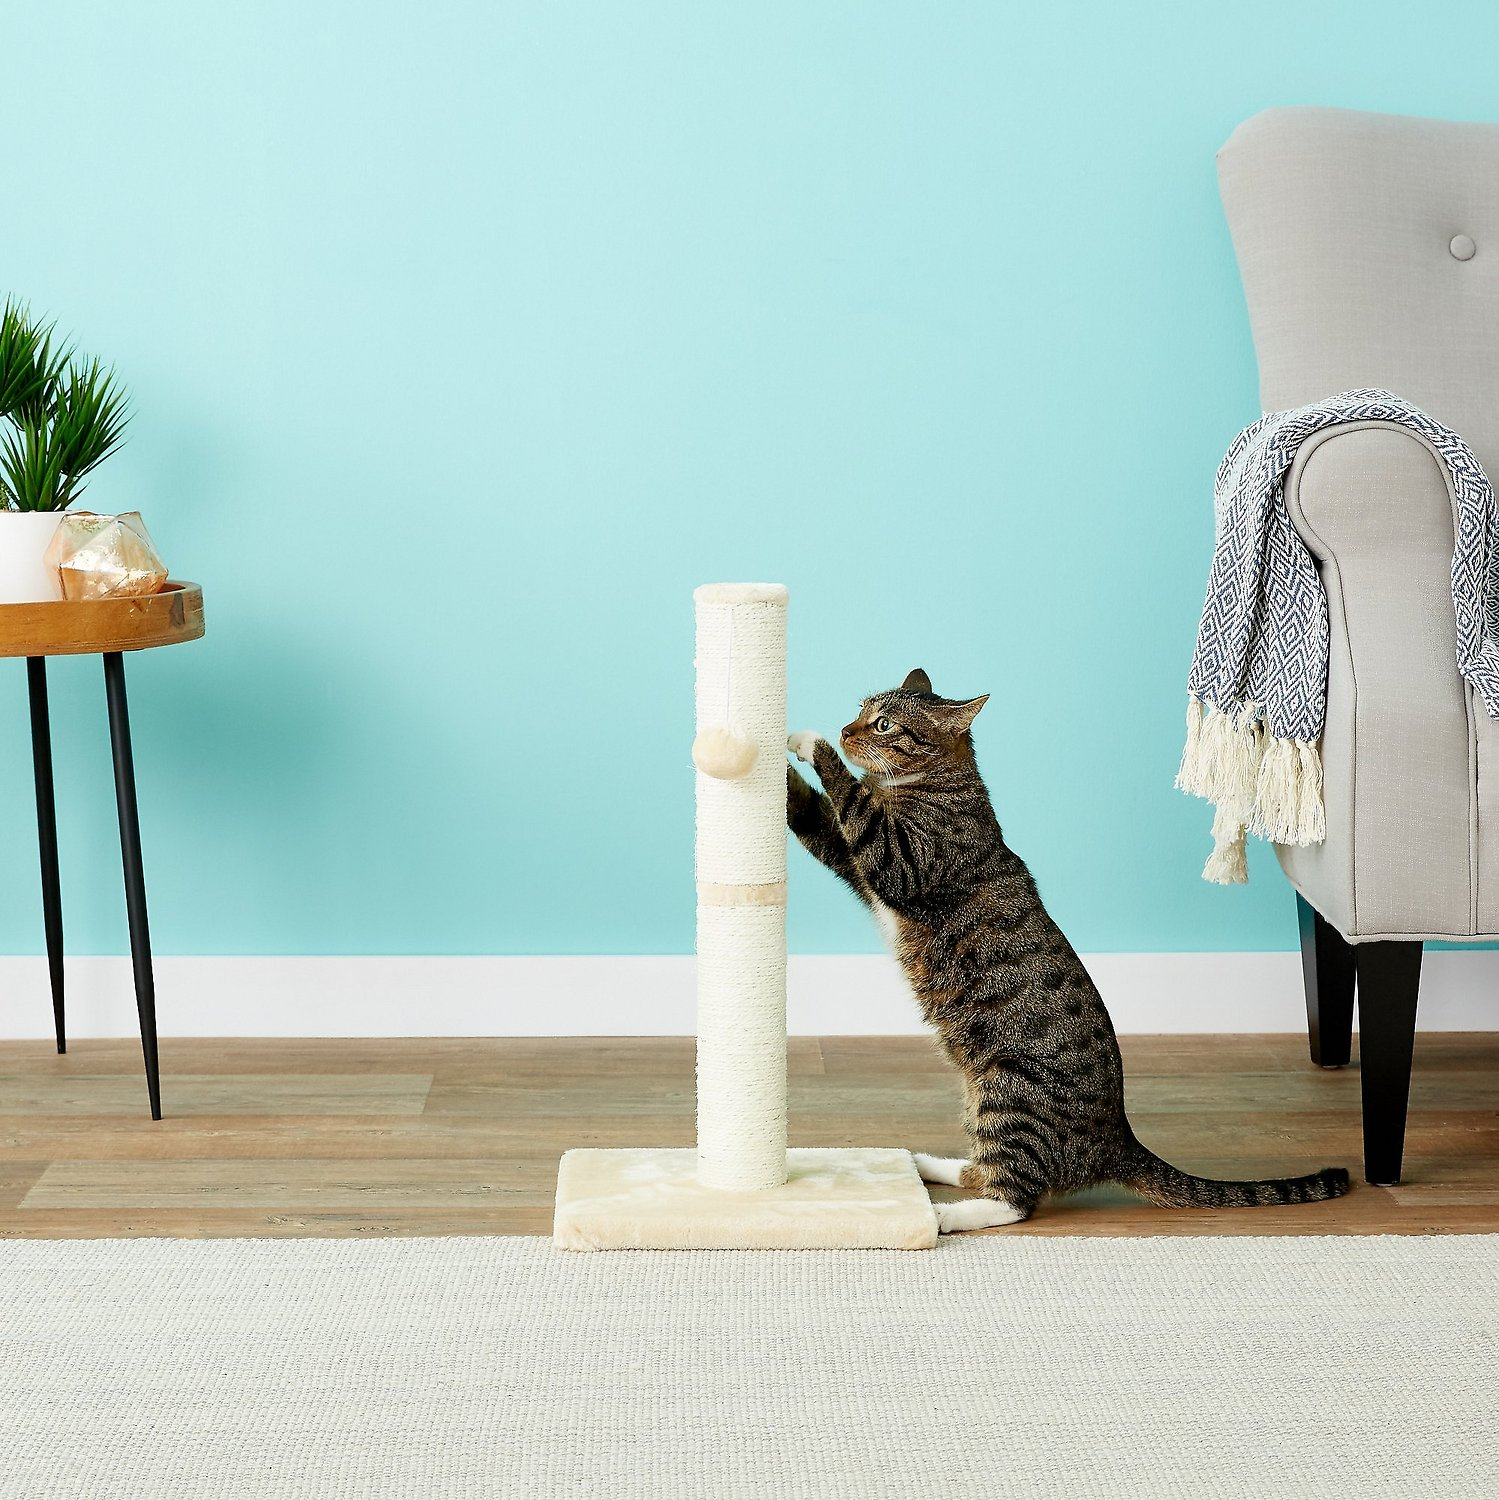 Frisco 21-in Cat Scratching Post with Toy, Cream forecast